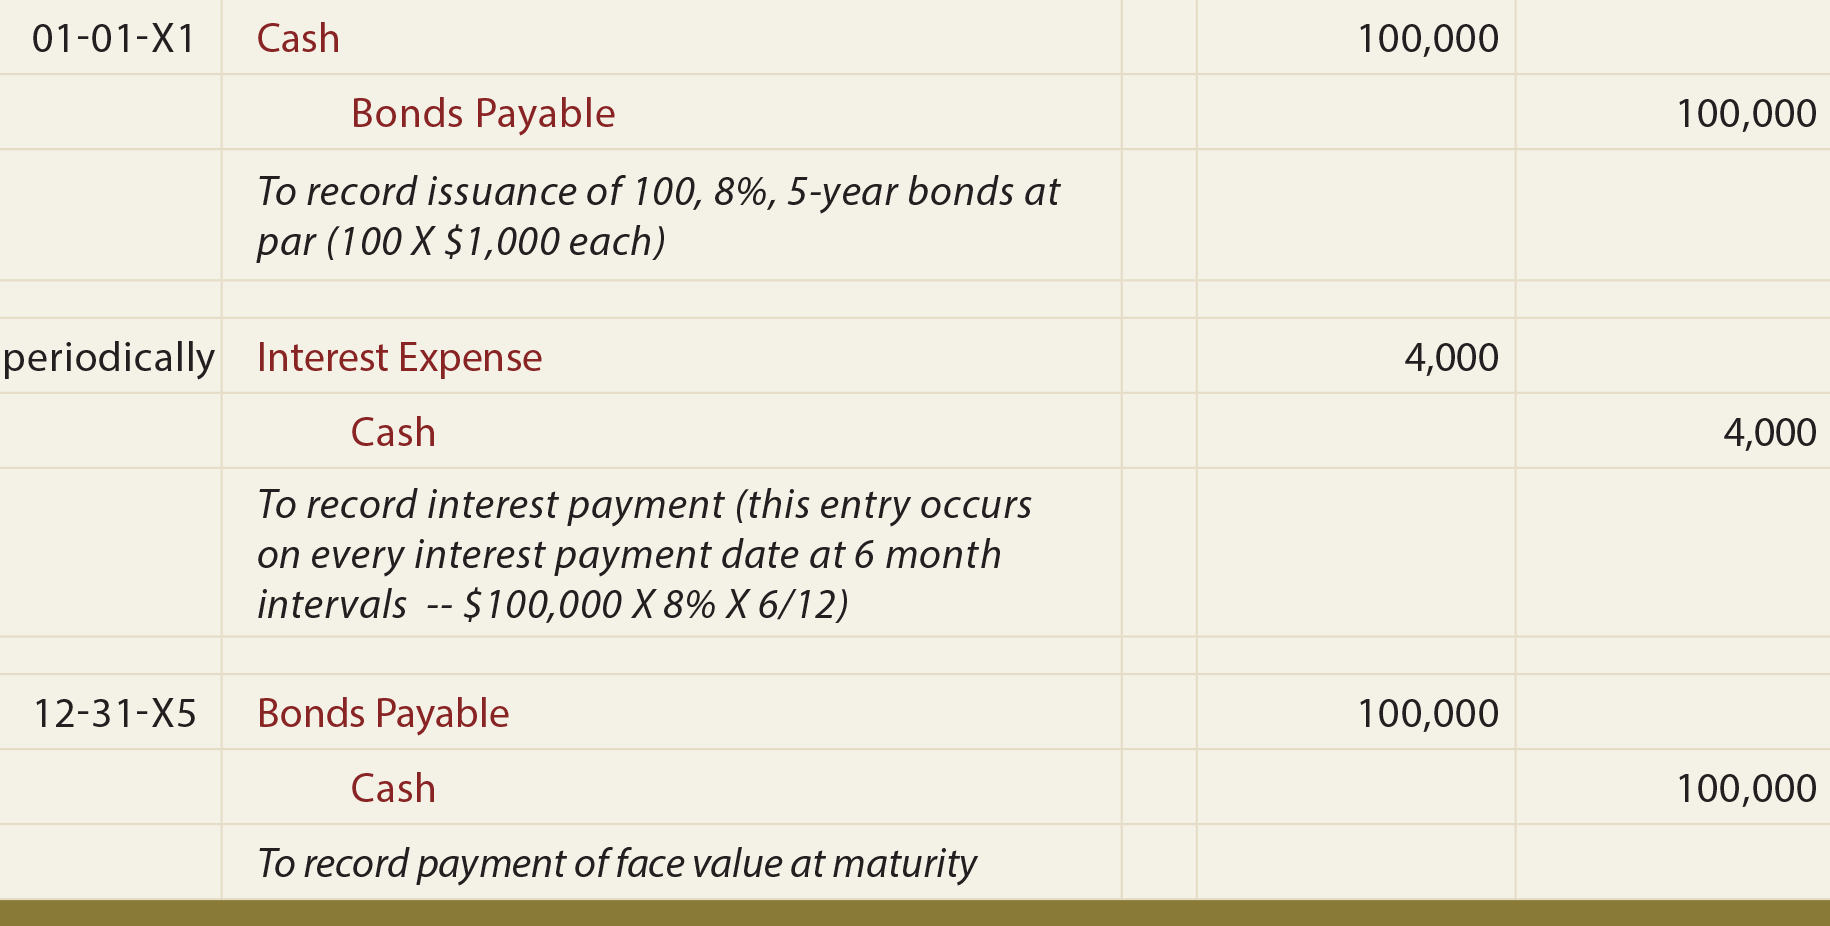 Bonds Payable at Par General Journal Entries - Bonds payable at par